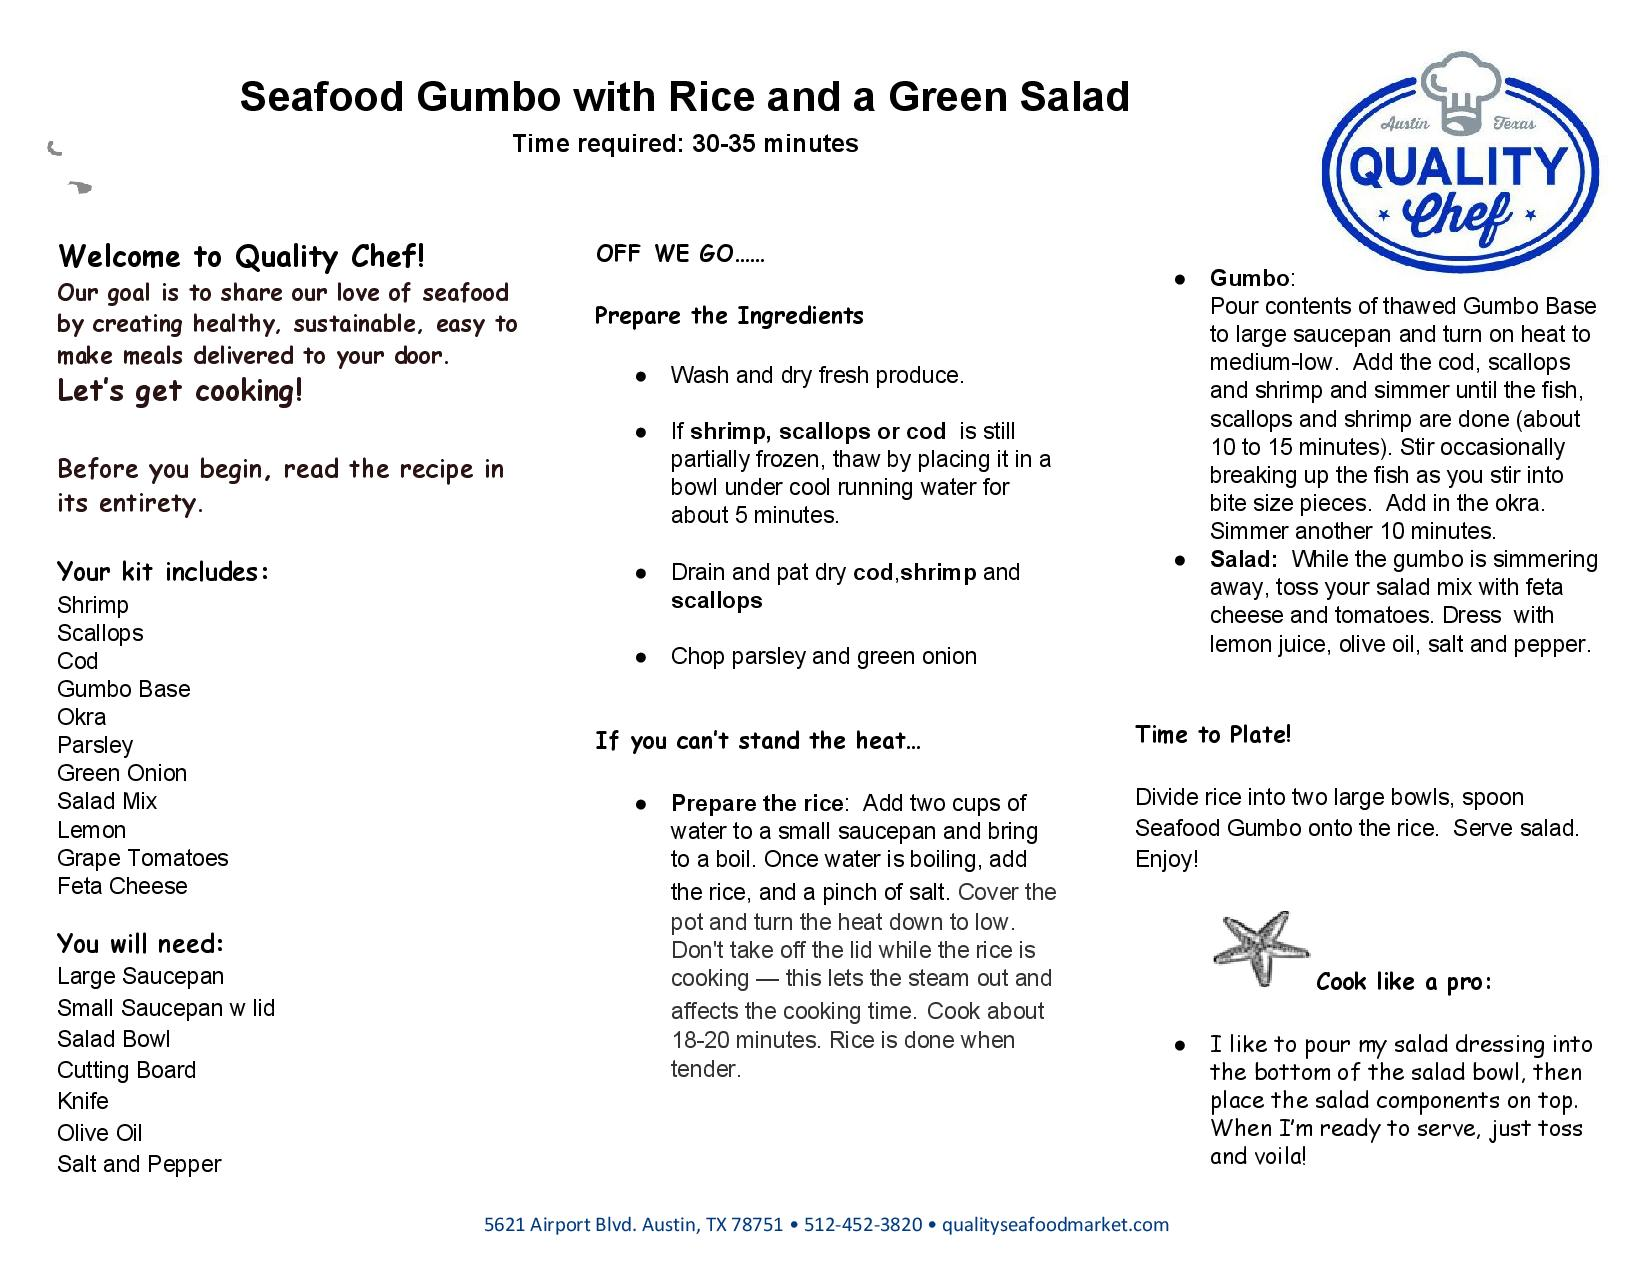 Seafood Gumbo with Rice and a Salad (3)-page-001.jpg